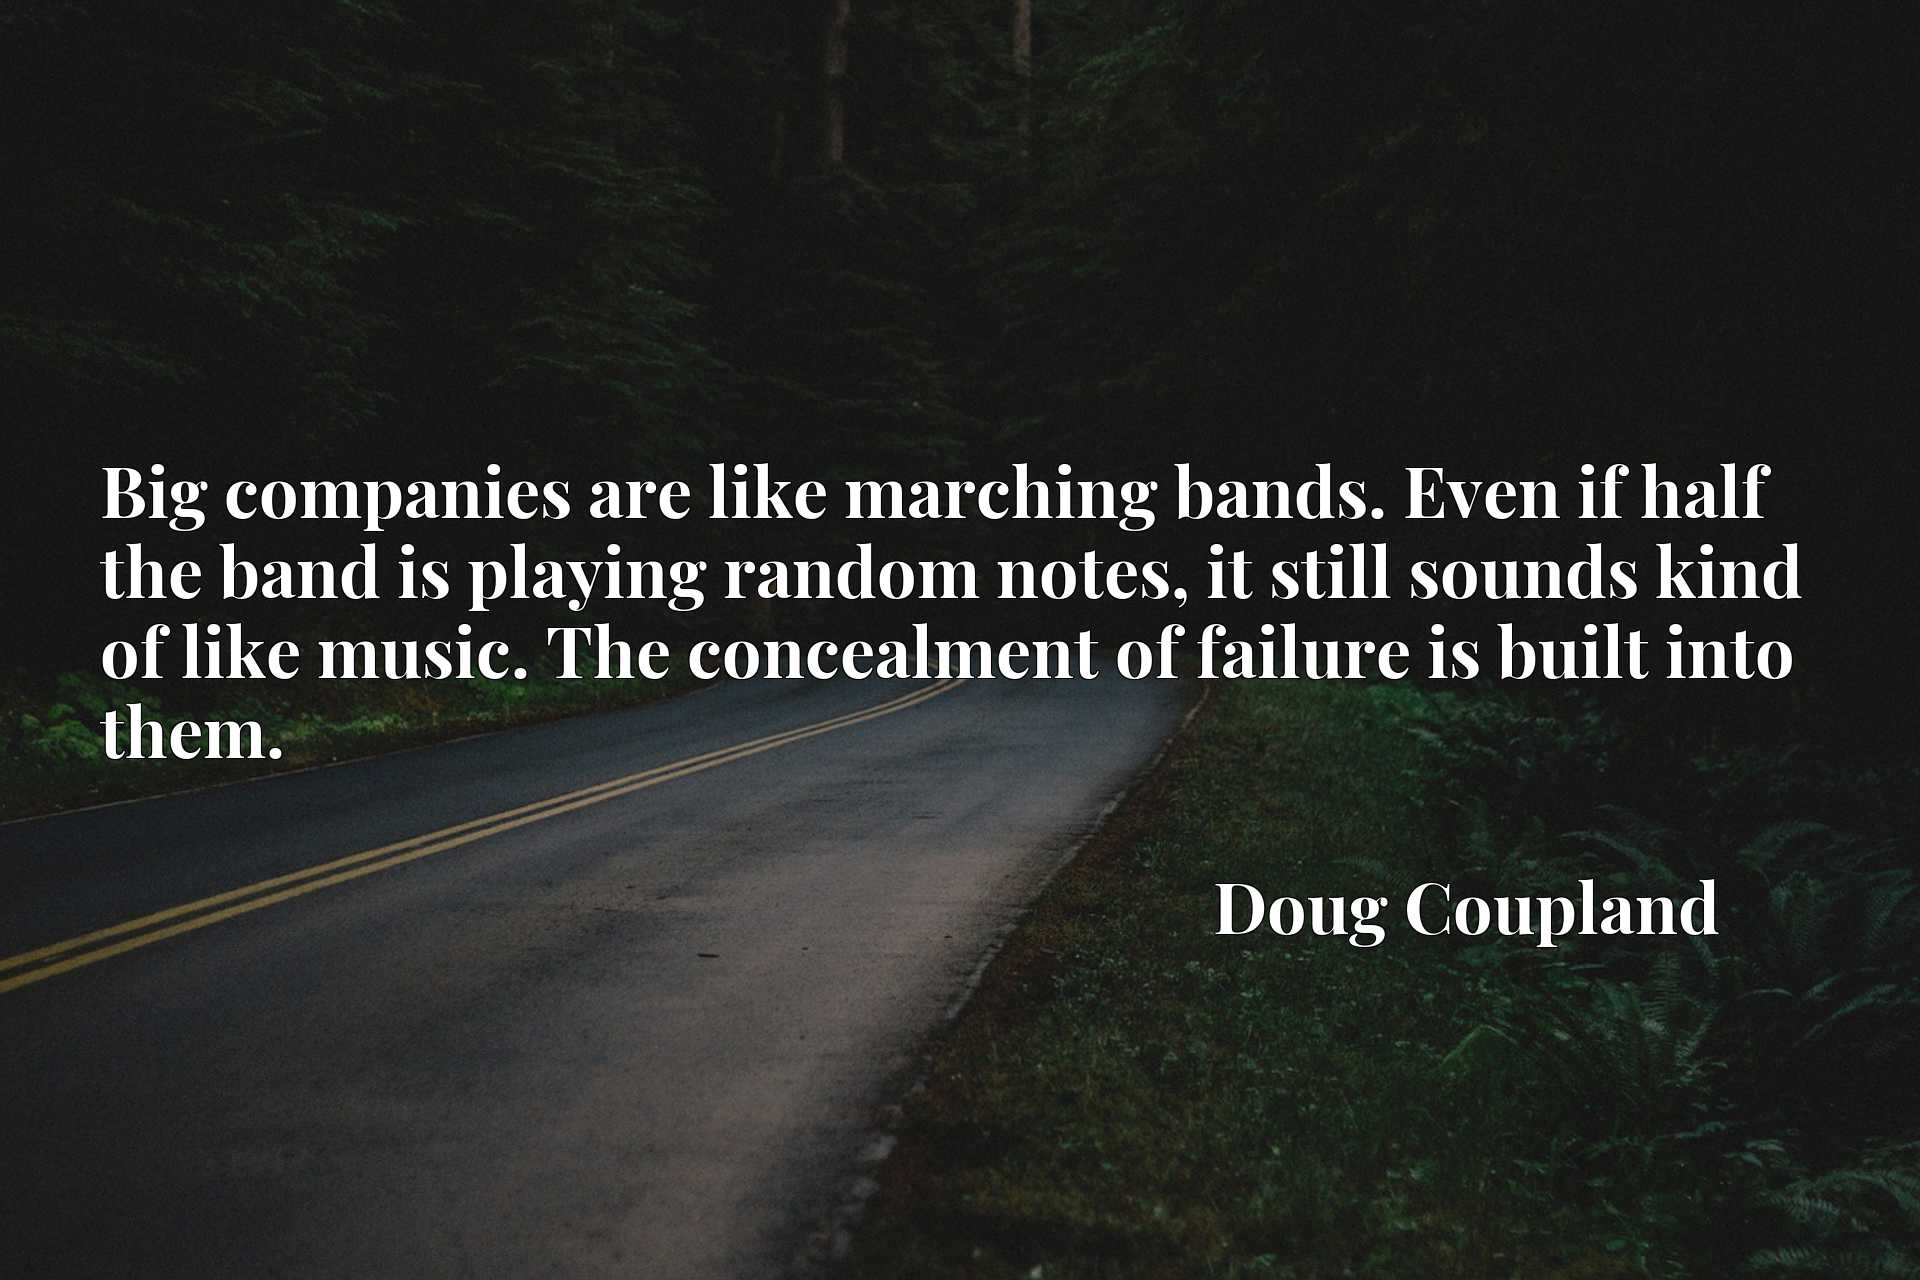 Big companies are like marching bands. Even if half the band is playing random notes, it still sounds kind of like music. The concealment of failure is built into them.